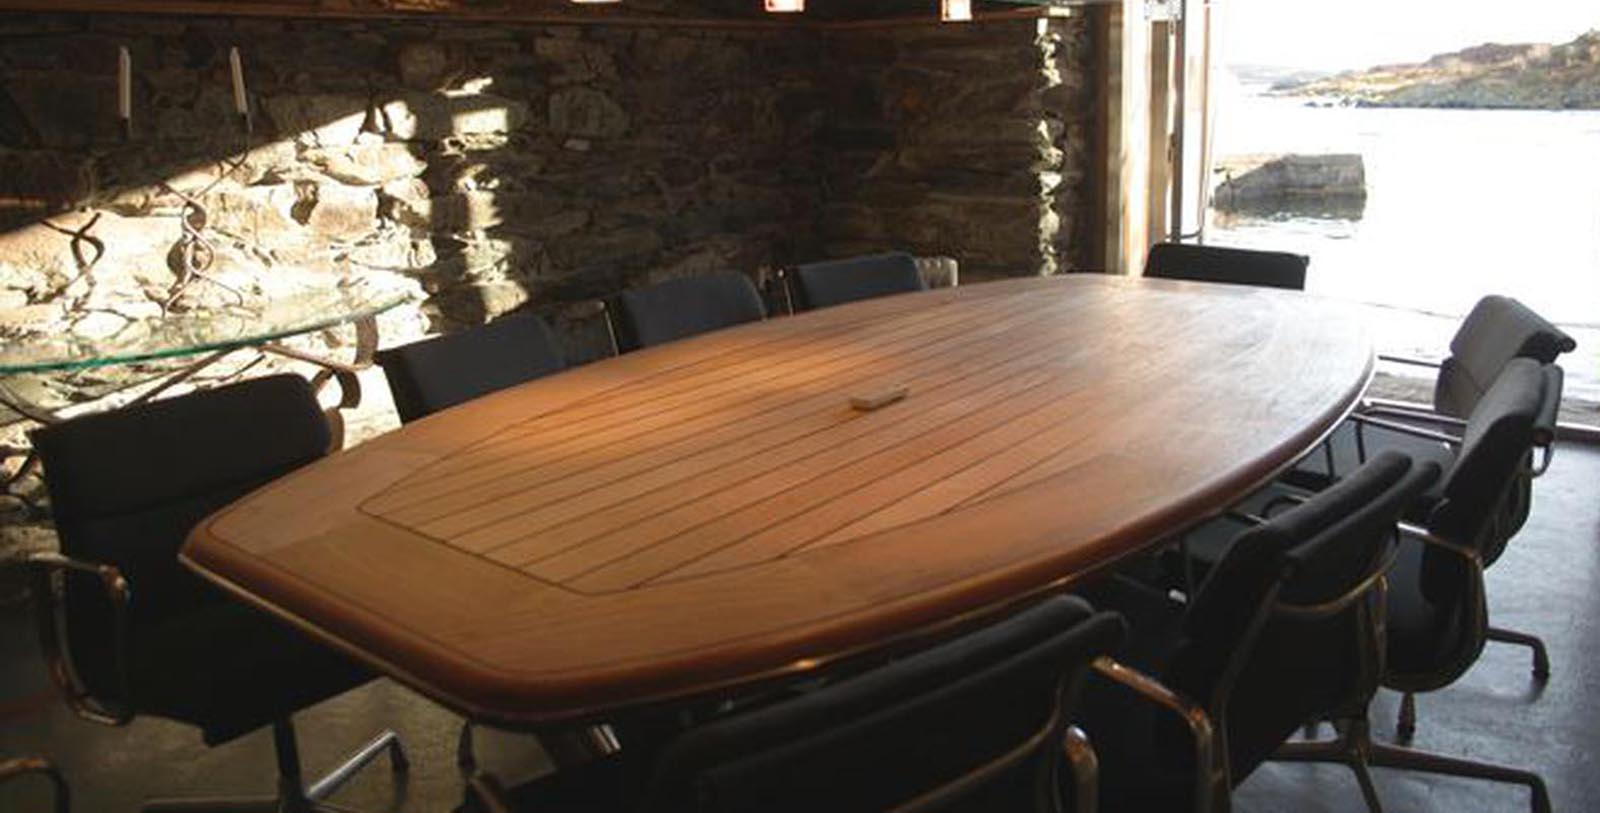 Image of Meeting Room Høyevarde Fyrhotell, 1700, Member of Historic Hotels Worldwide, in Havik, Norway, Experience